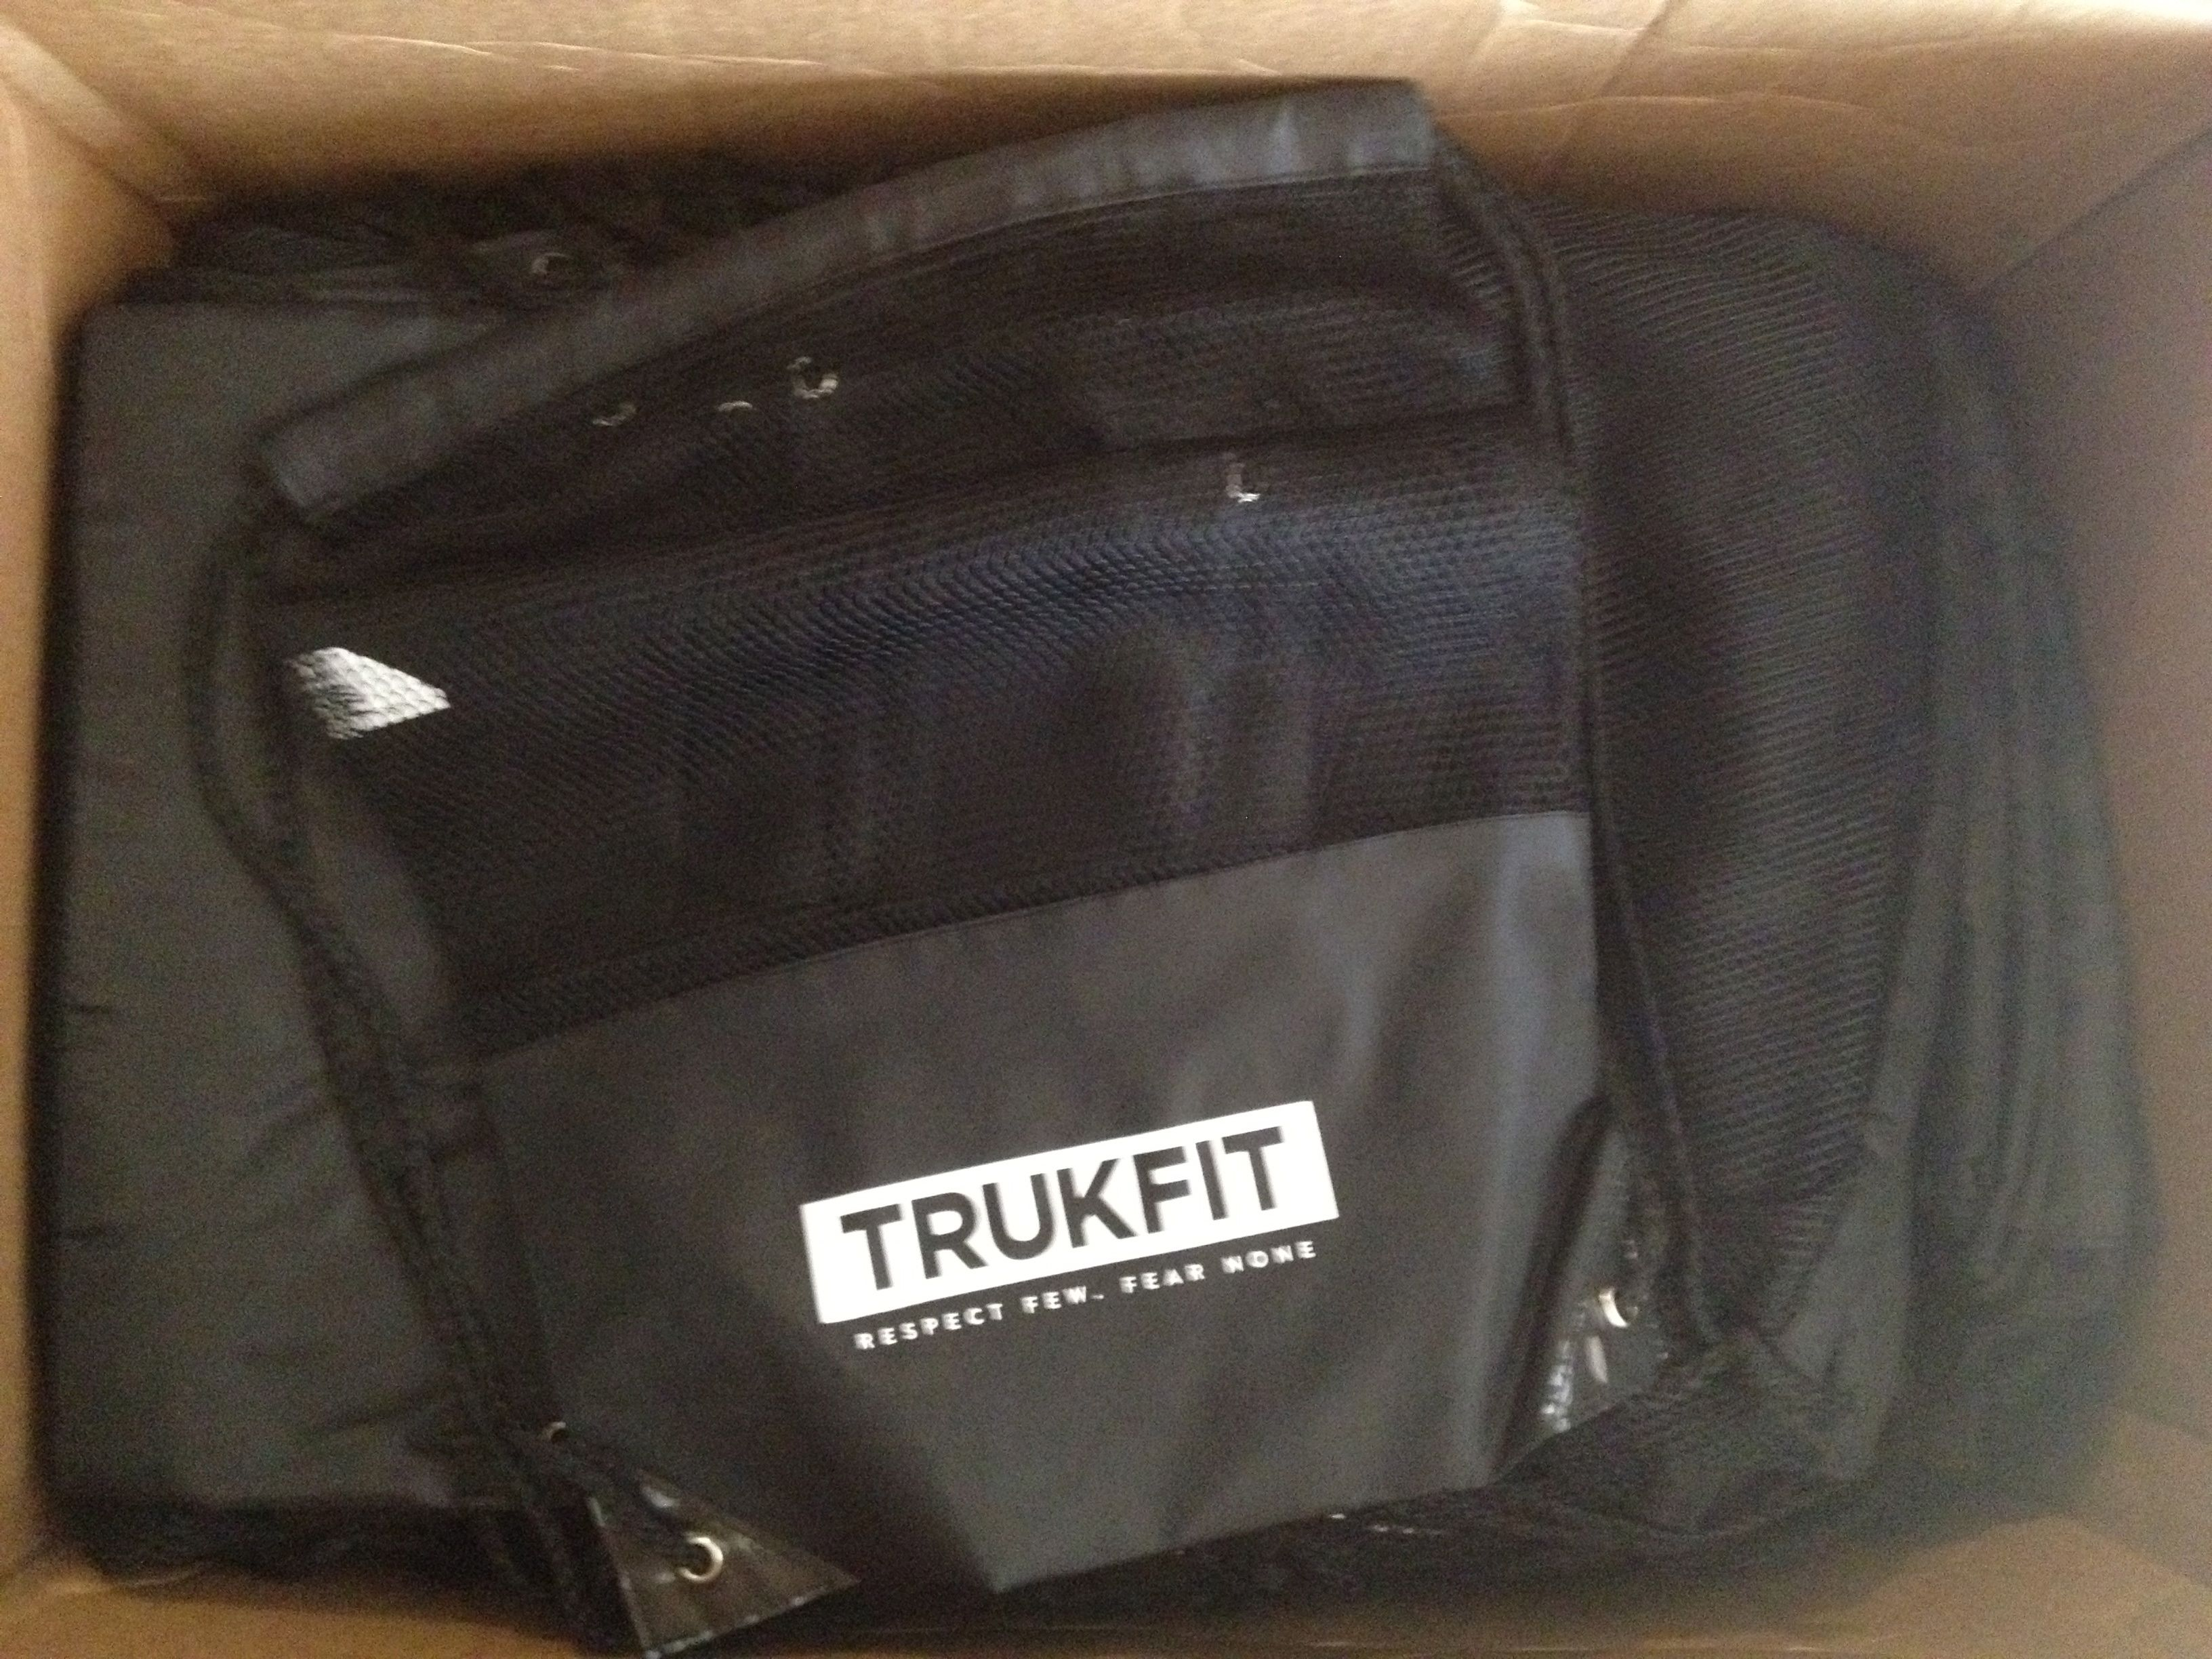 Backpacks for our kids : D     by TRUKFIT!